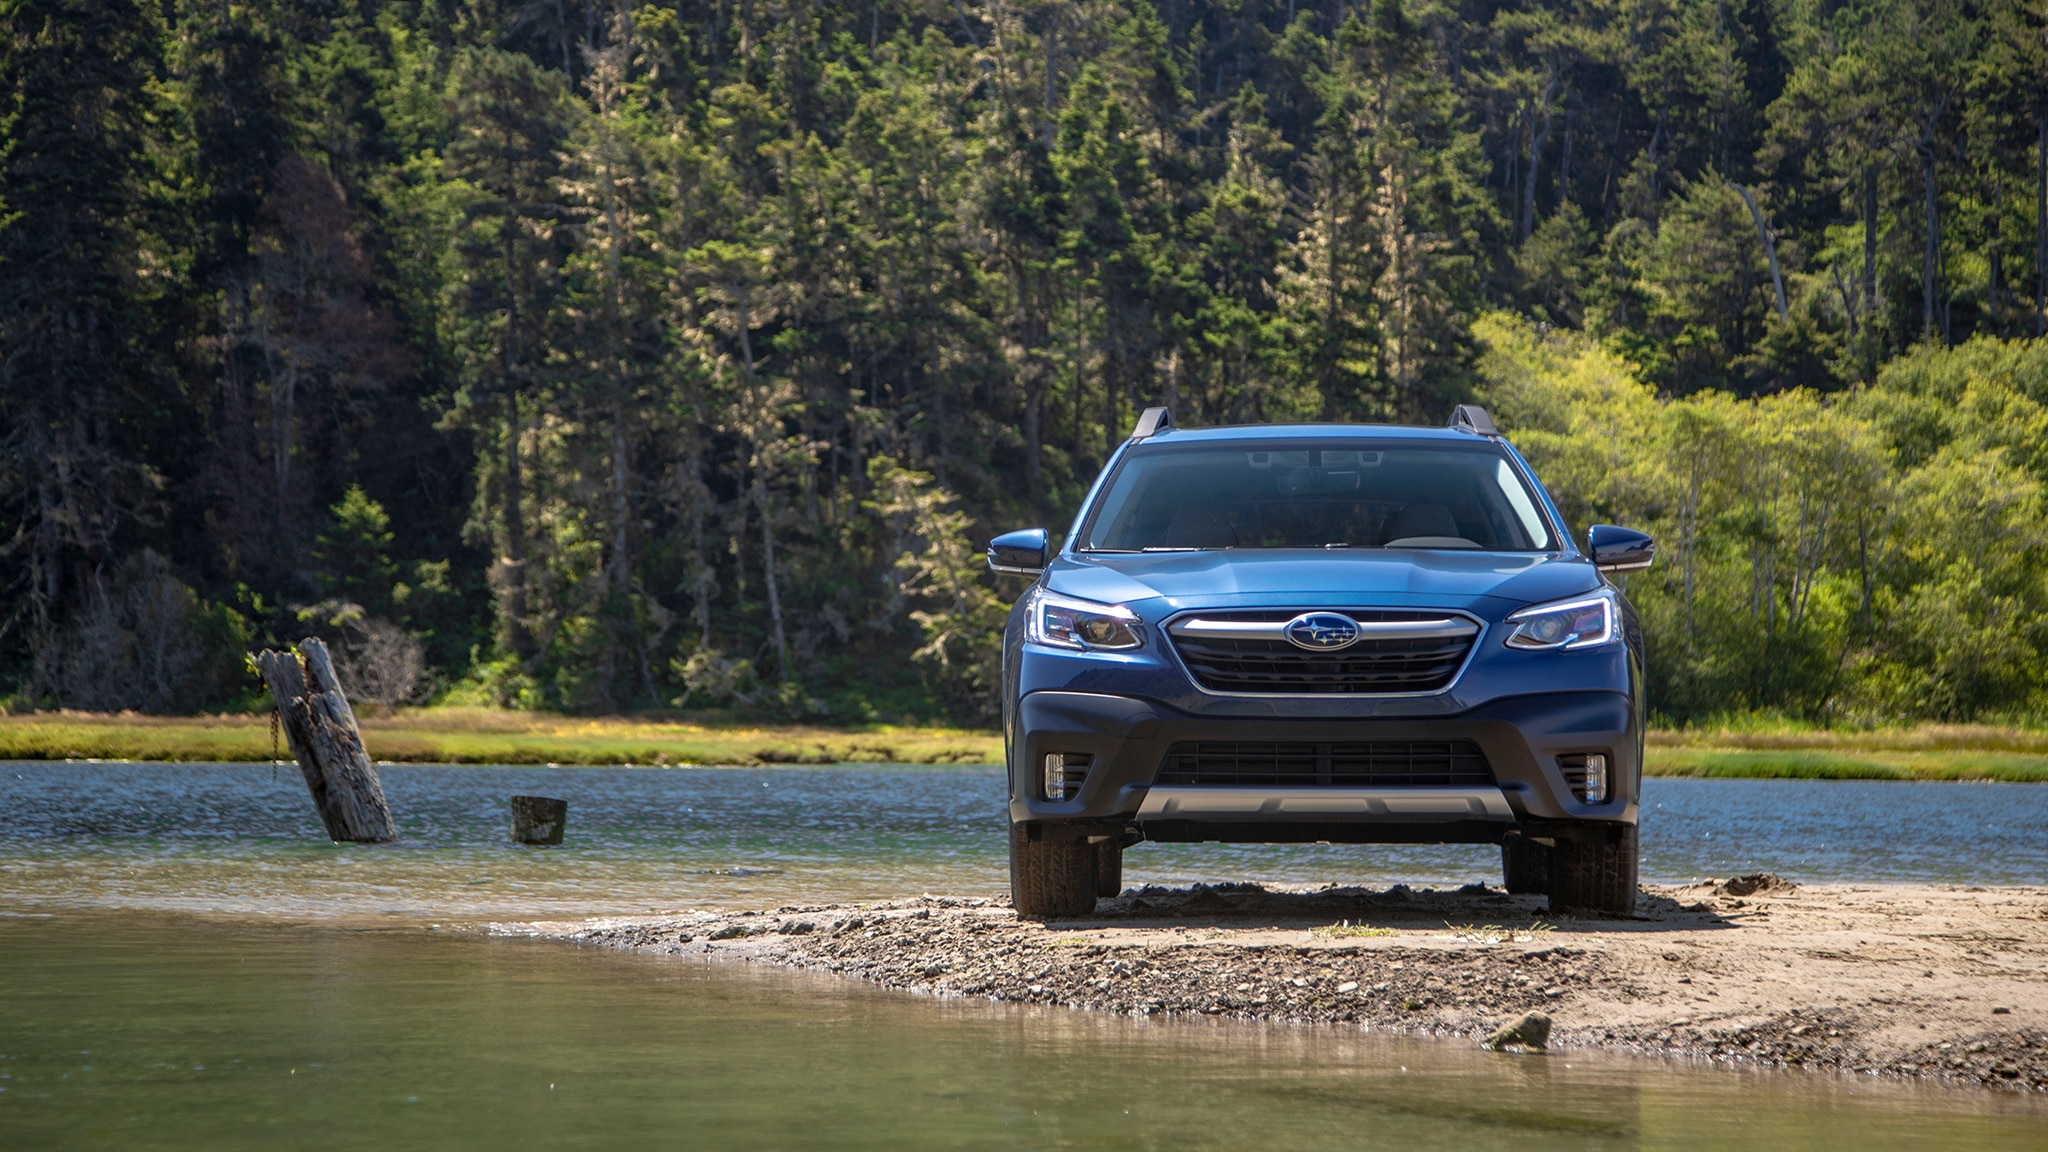 REVIEW: The 2020 Subaru Outback Has What It Takes to Win New